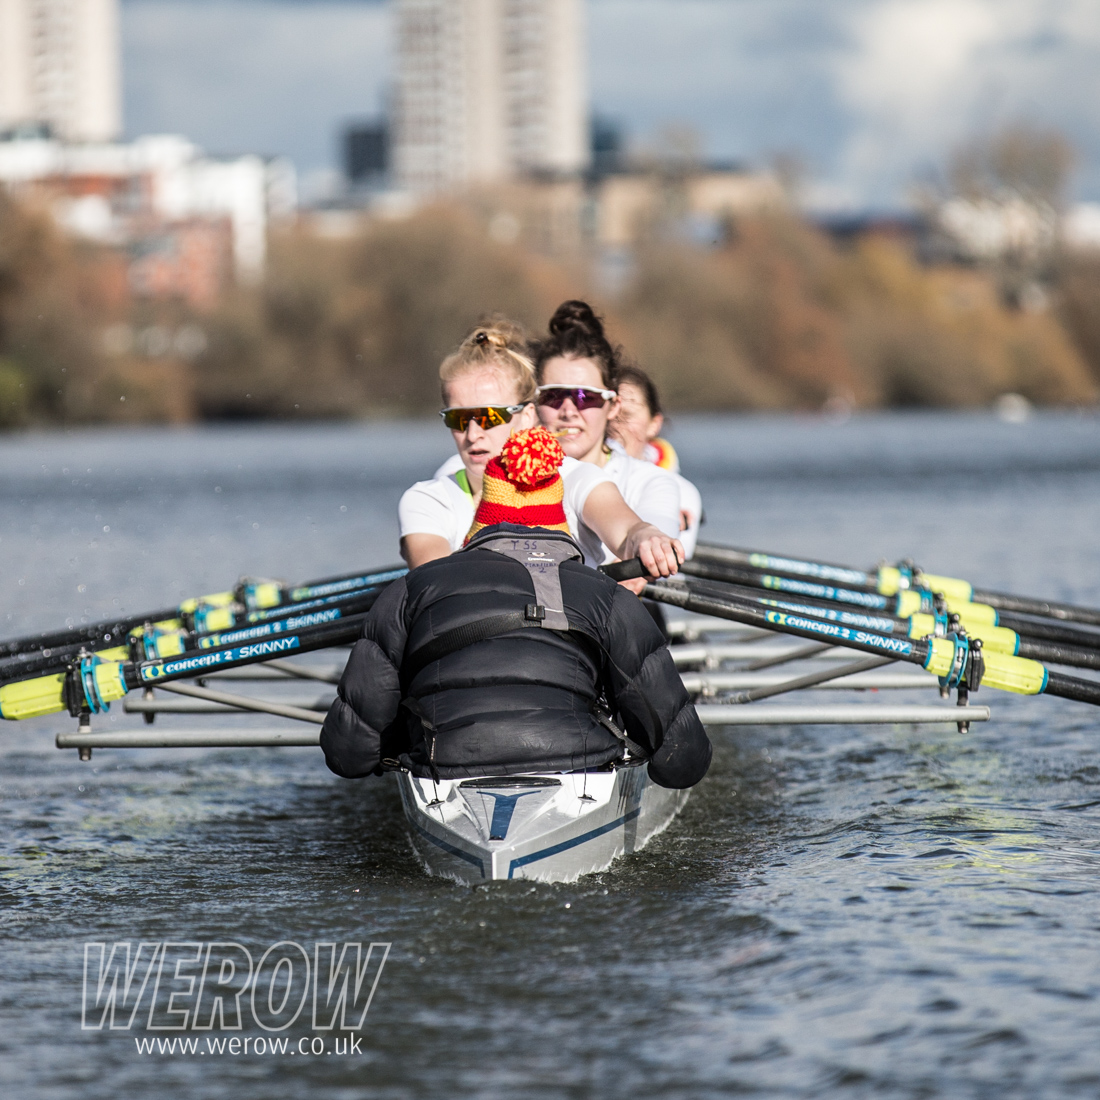 WEROW Tideway Scullers School 2742 1 - The Tideways Scullers women's squad seat racing for WEHORR 2018 video & images